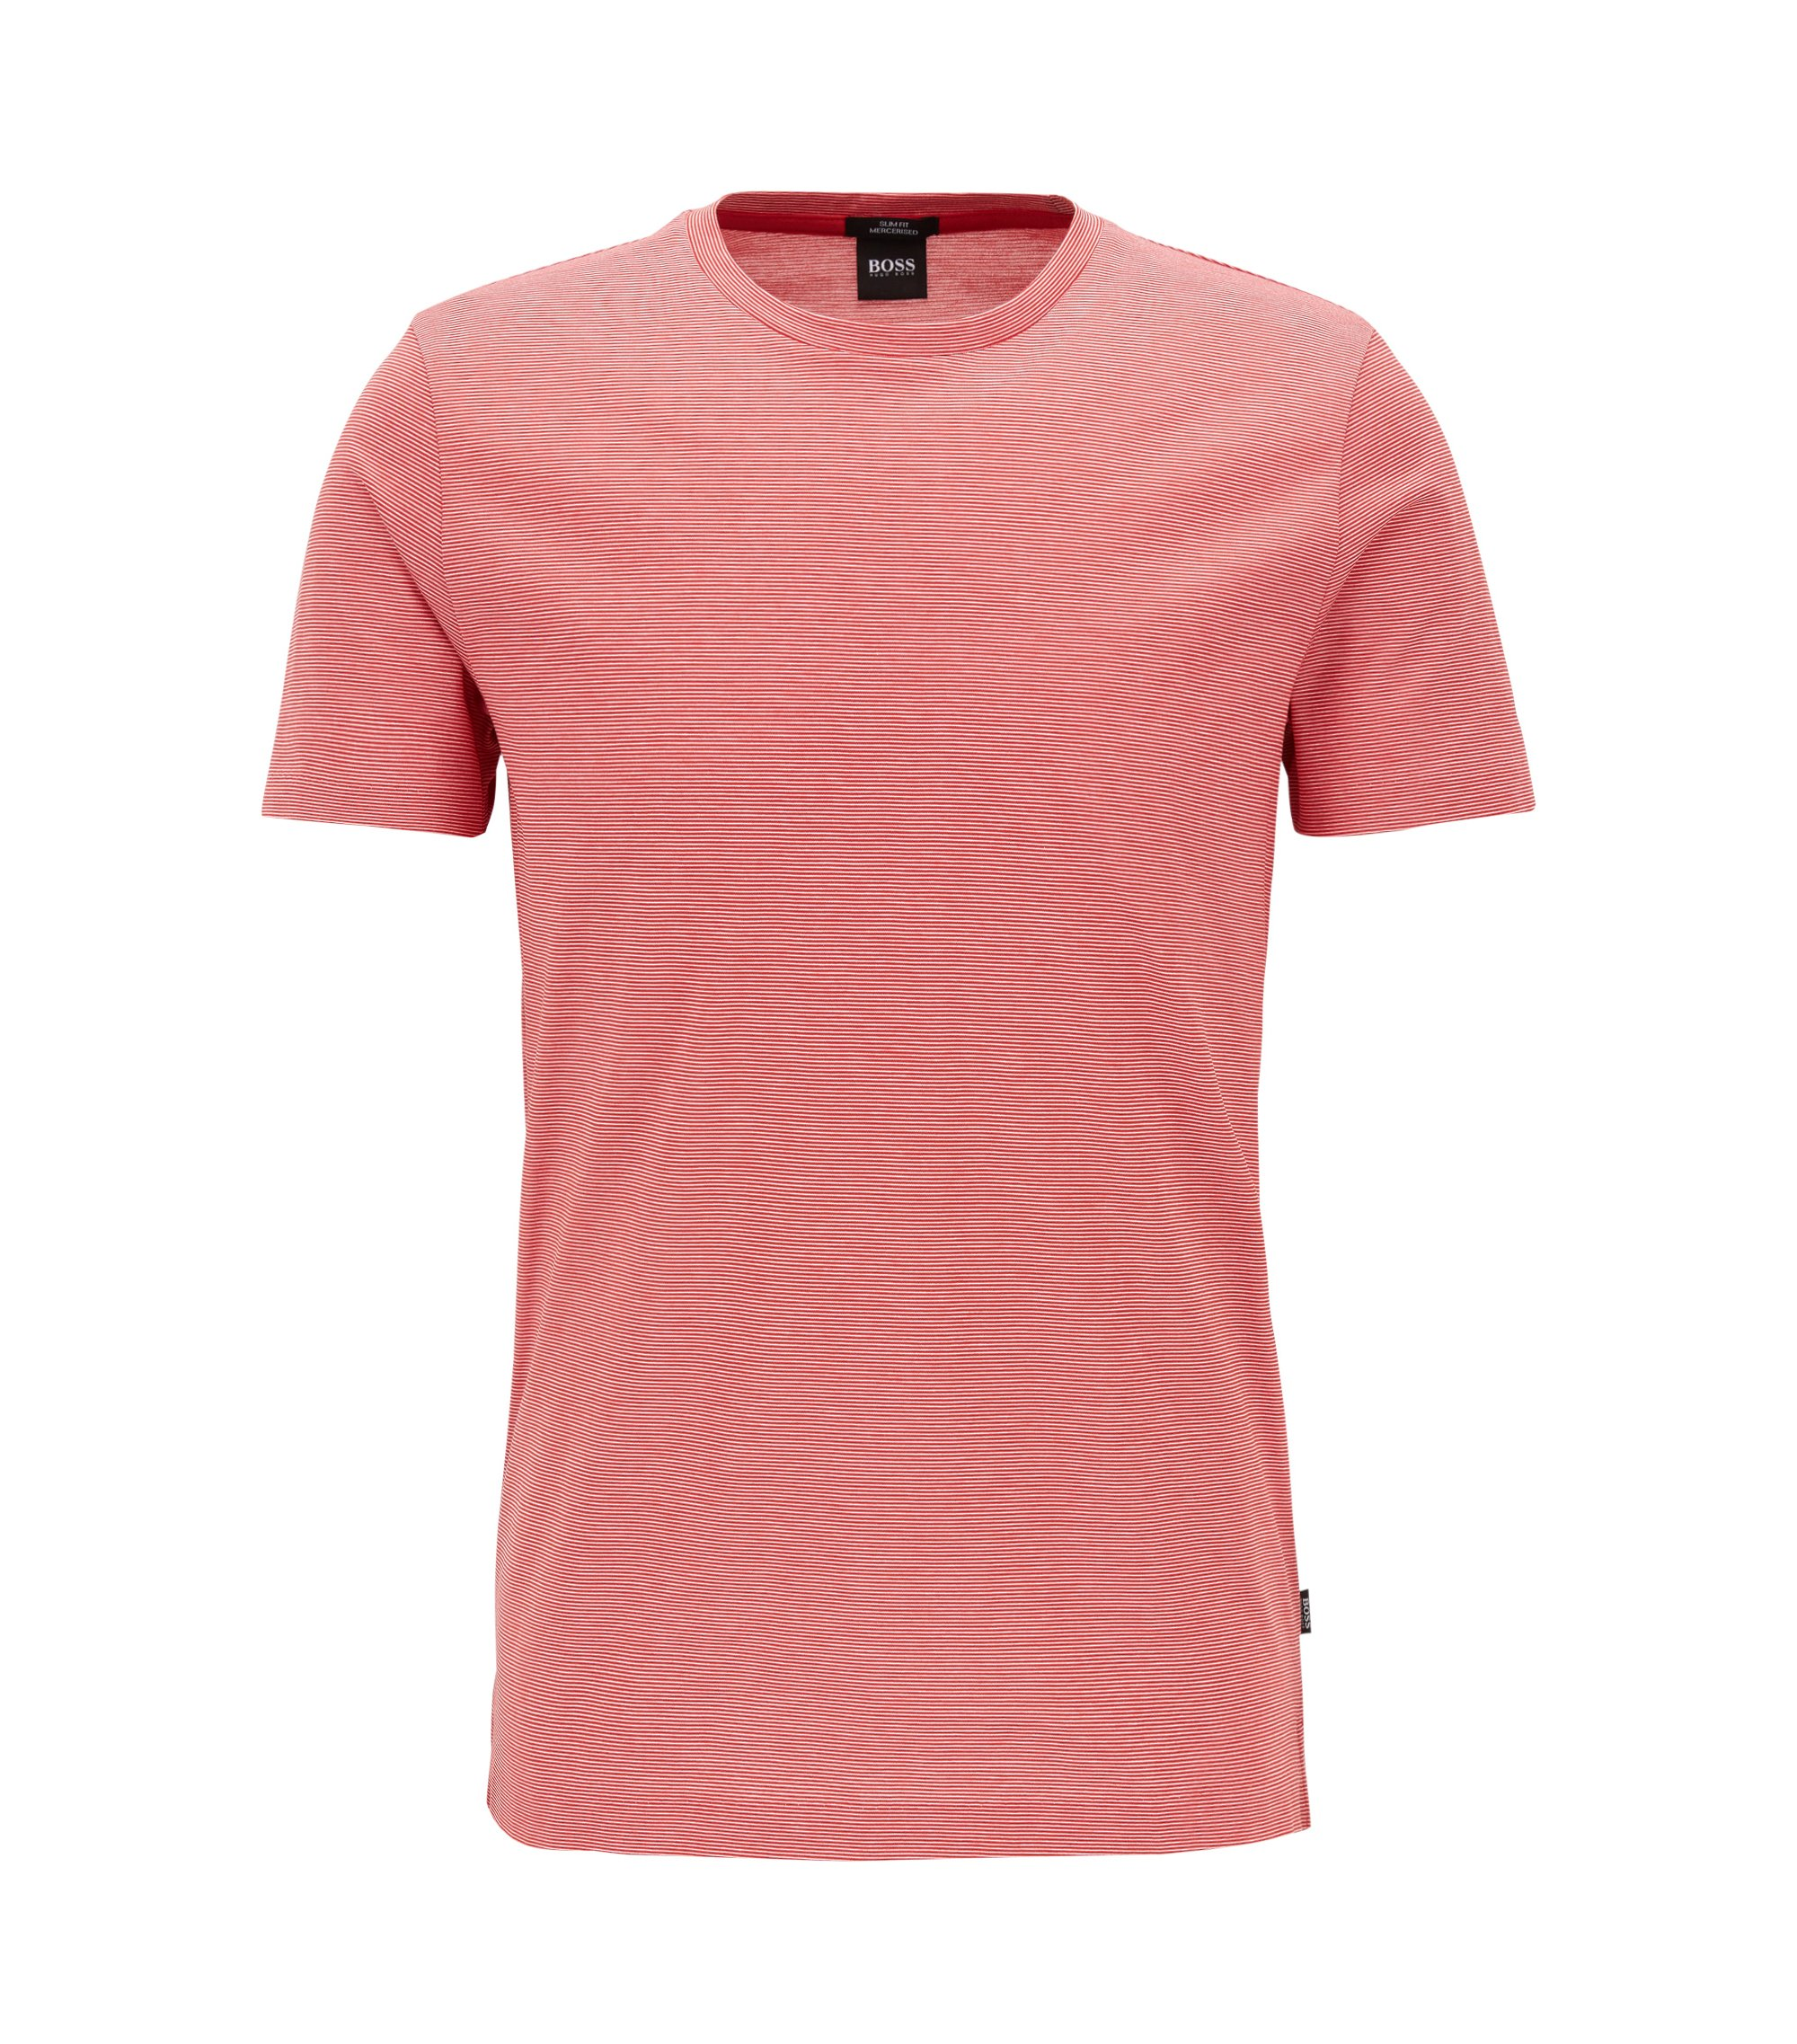 Mercerized Cotton T-Shirt | Tessler, Dark pink